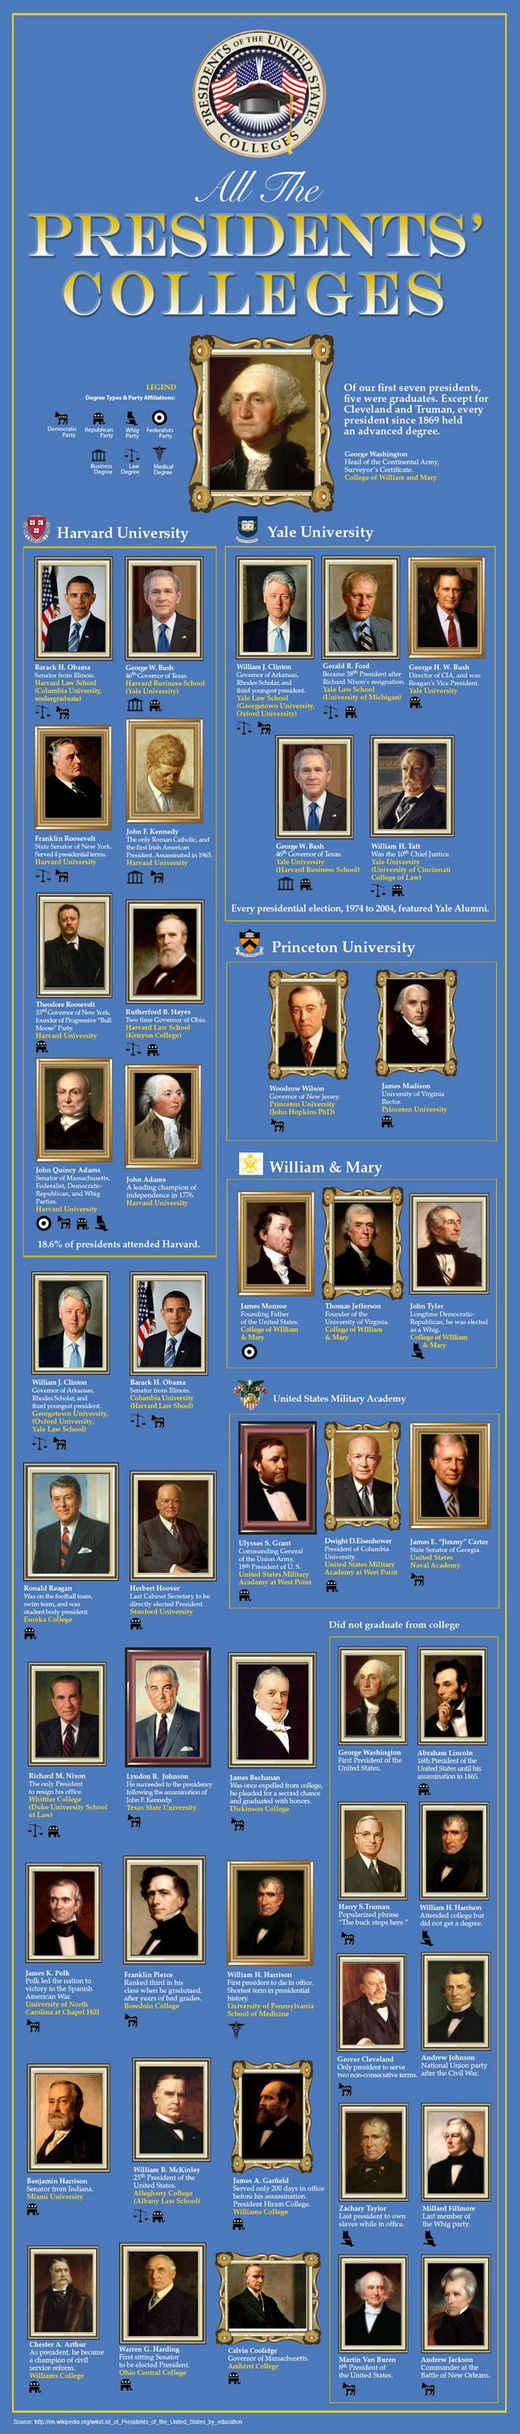 All the Presidents Colleges